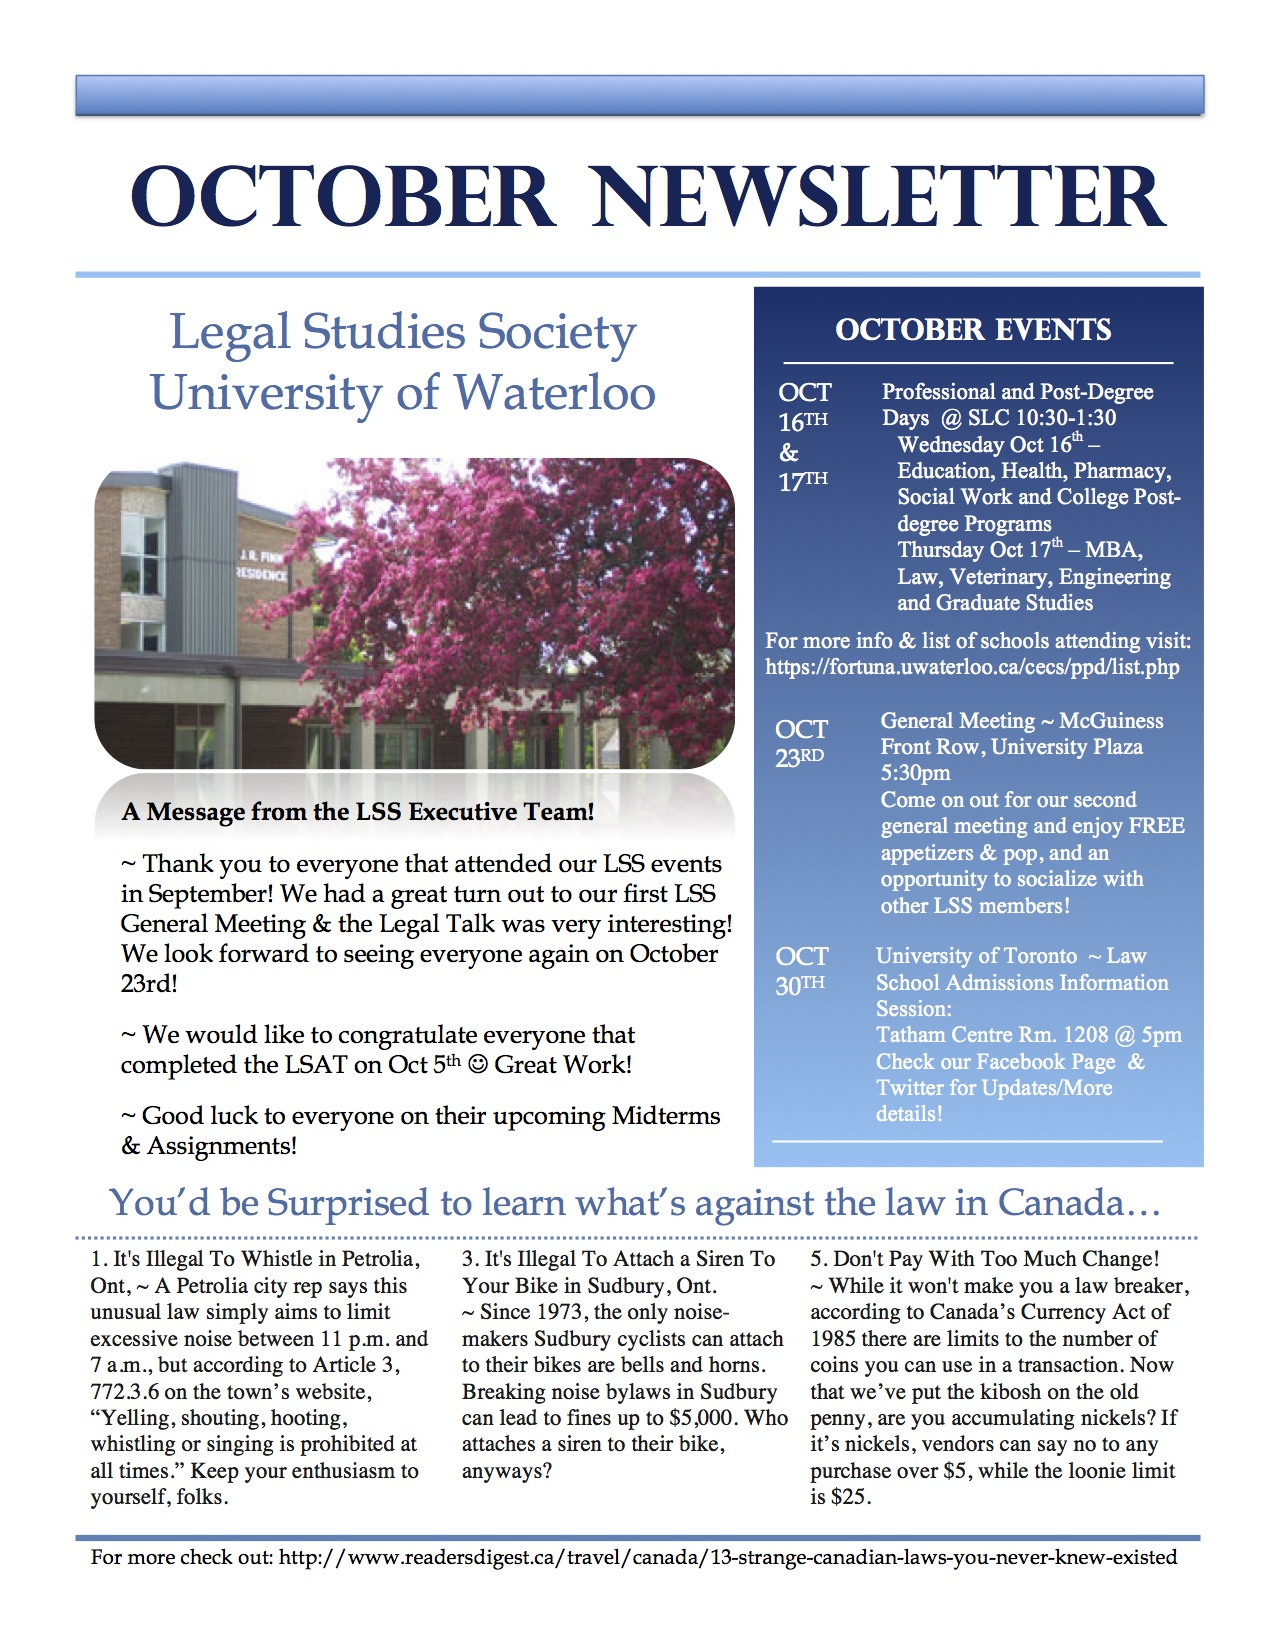 Monthly Newsletters Legal Studies Society